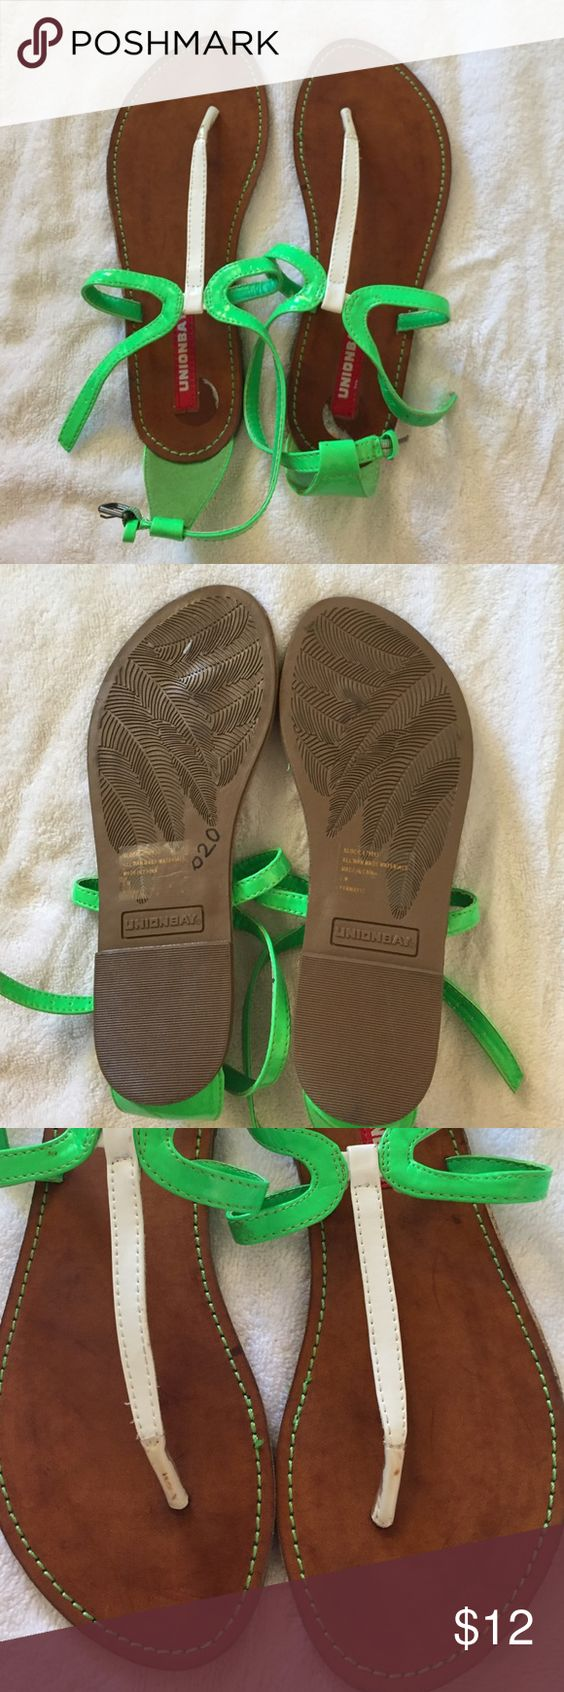 Union bay sandals excellent condition! Perfect for summer! Neon green strap with white makes for cute color blocking! Tagged as new with tags because these have never been worn (see bottom) and still have the sticker! They have some small scuffs at toe potion which is not noticeable if you wear them! (See pic 4) also have removed tag on top of shoe sole so it has some sticky residue since I didn't remove all of it. This can be removed with nail polish remover! Unionbay Shoes